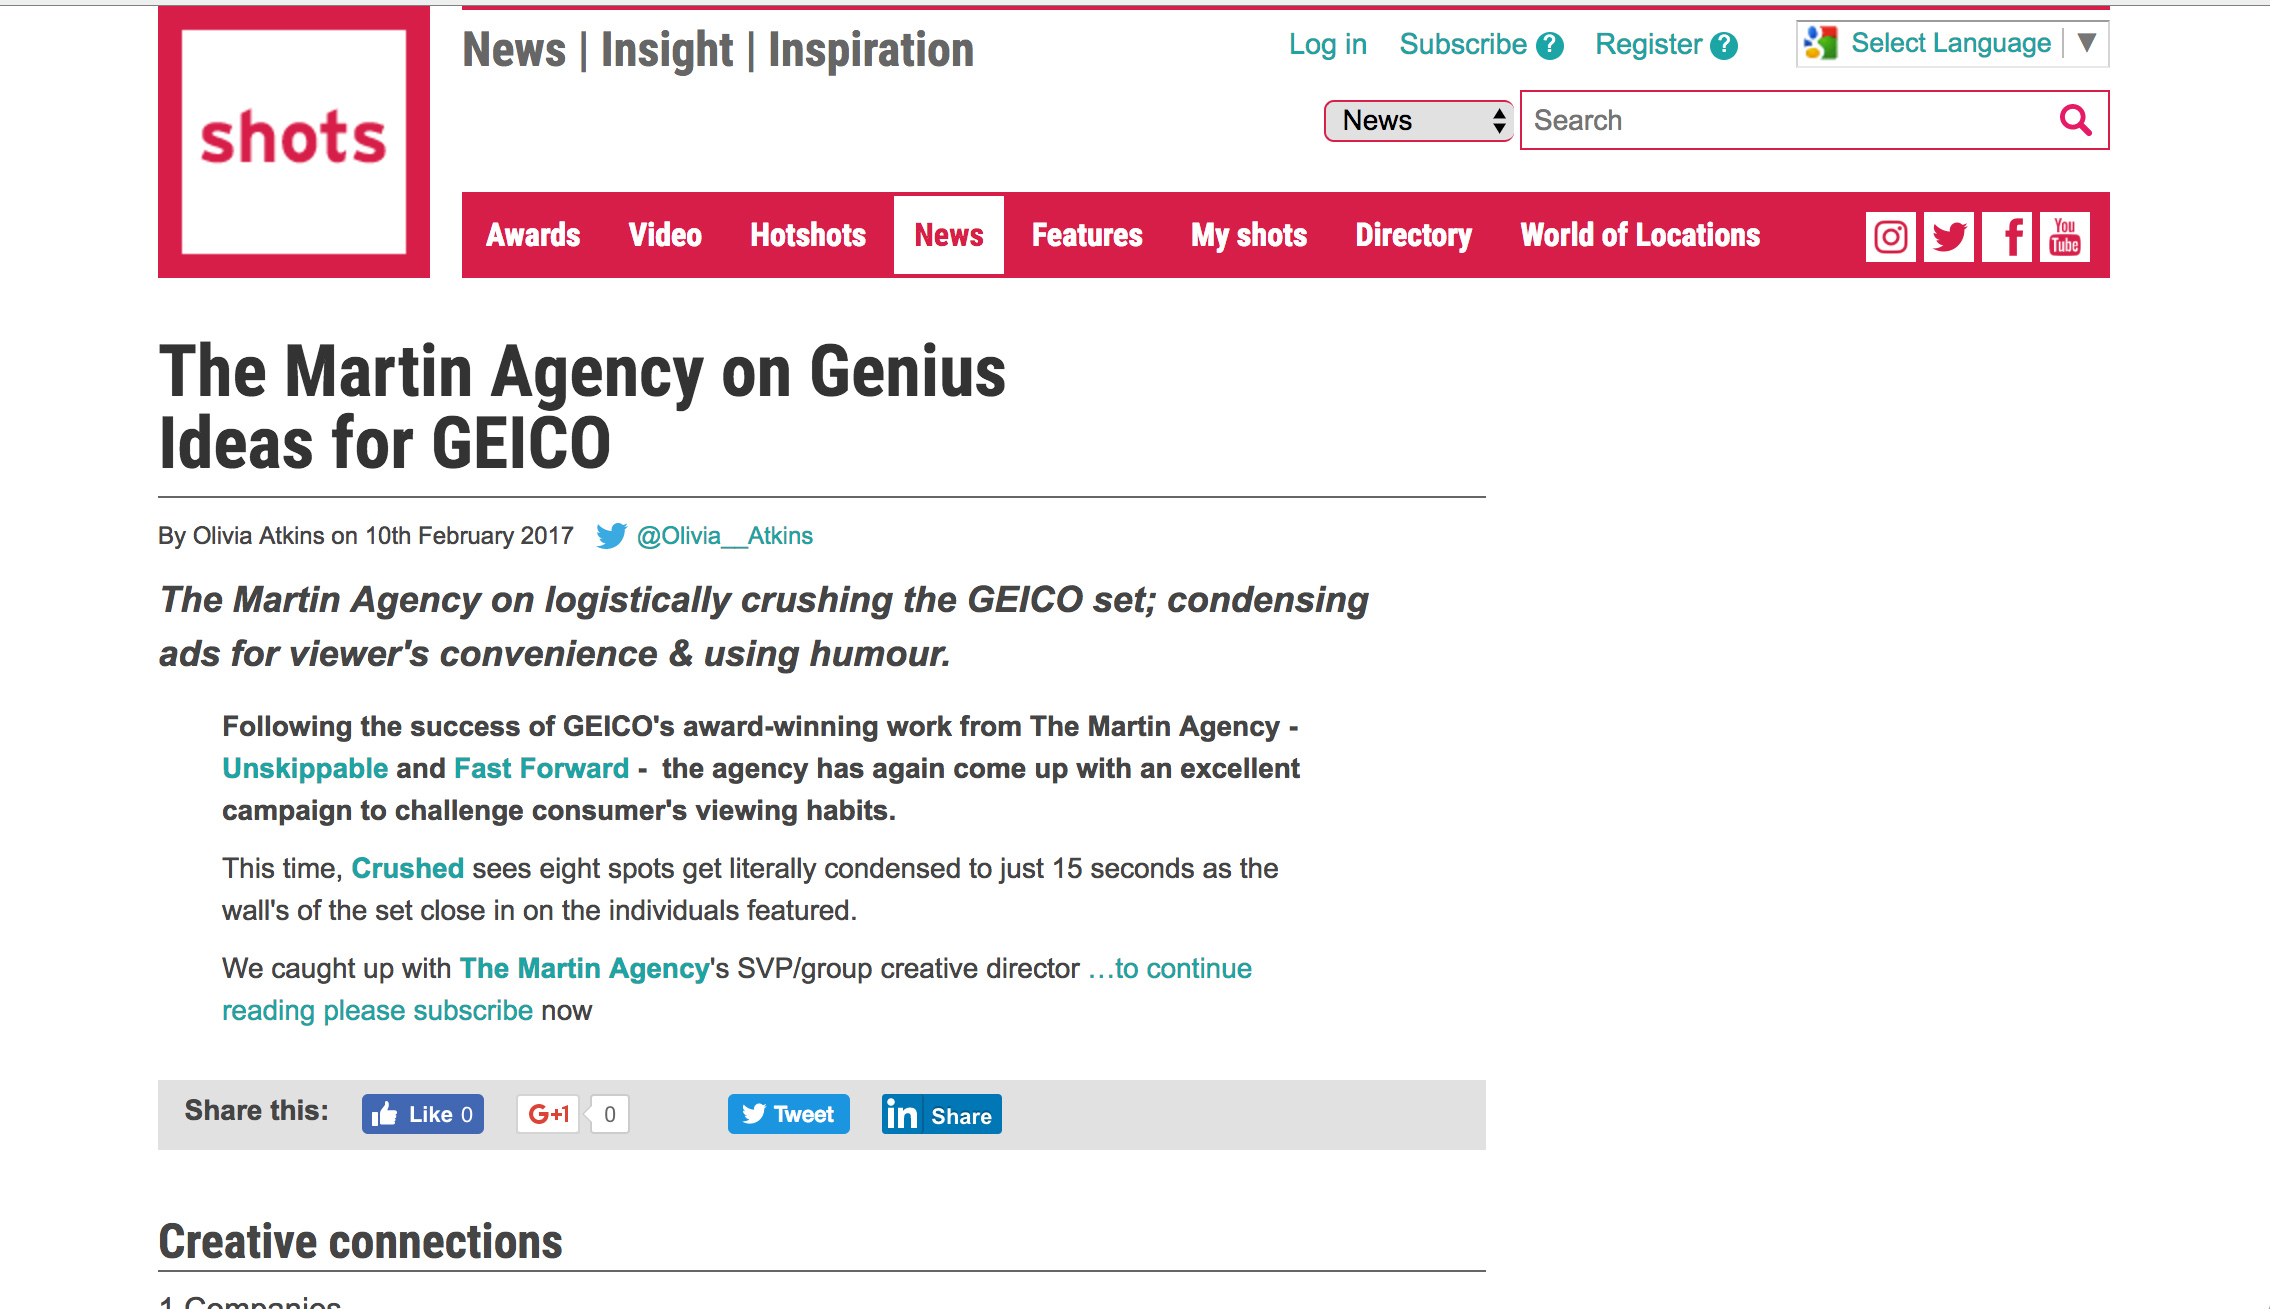 The Martin Agency on logistically crushing the GEICO set; condensing ads for viewer's convenience & using humour.